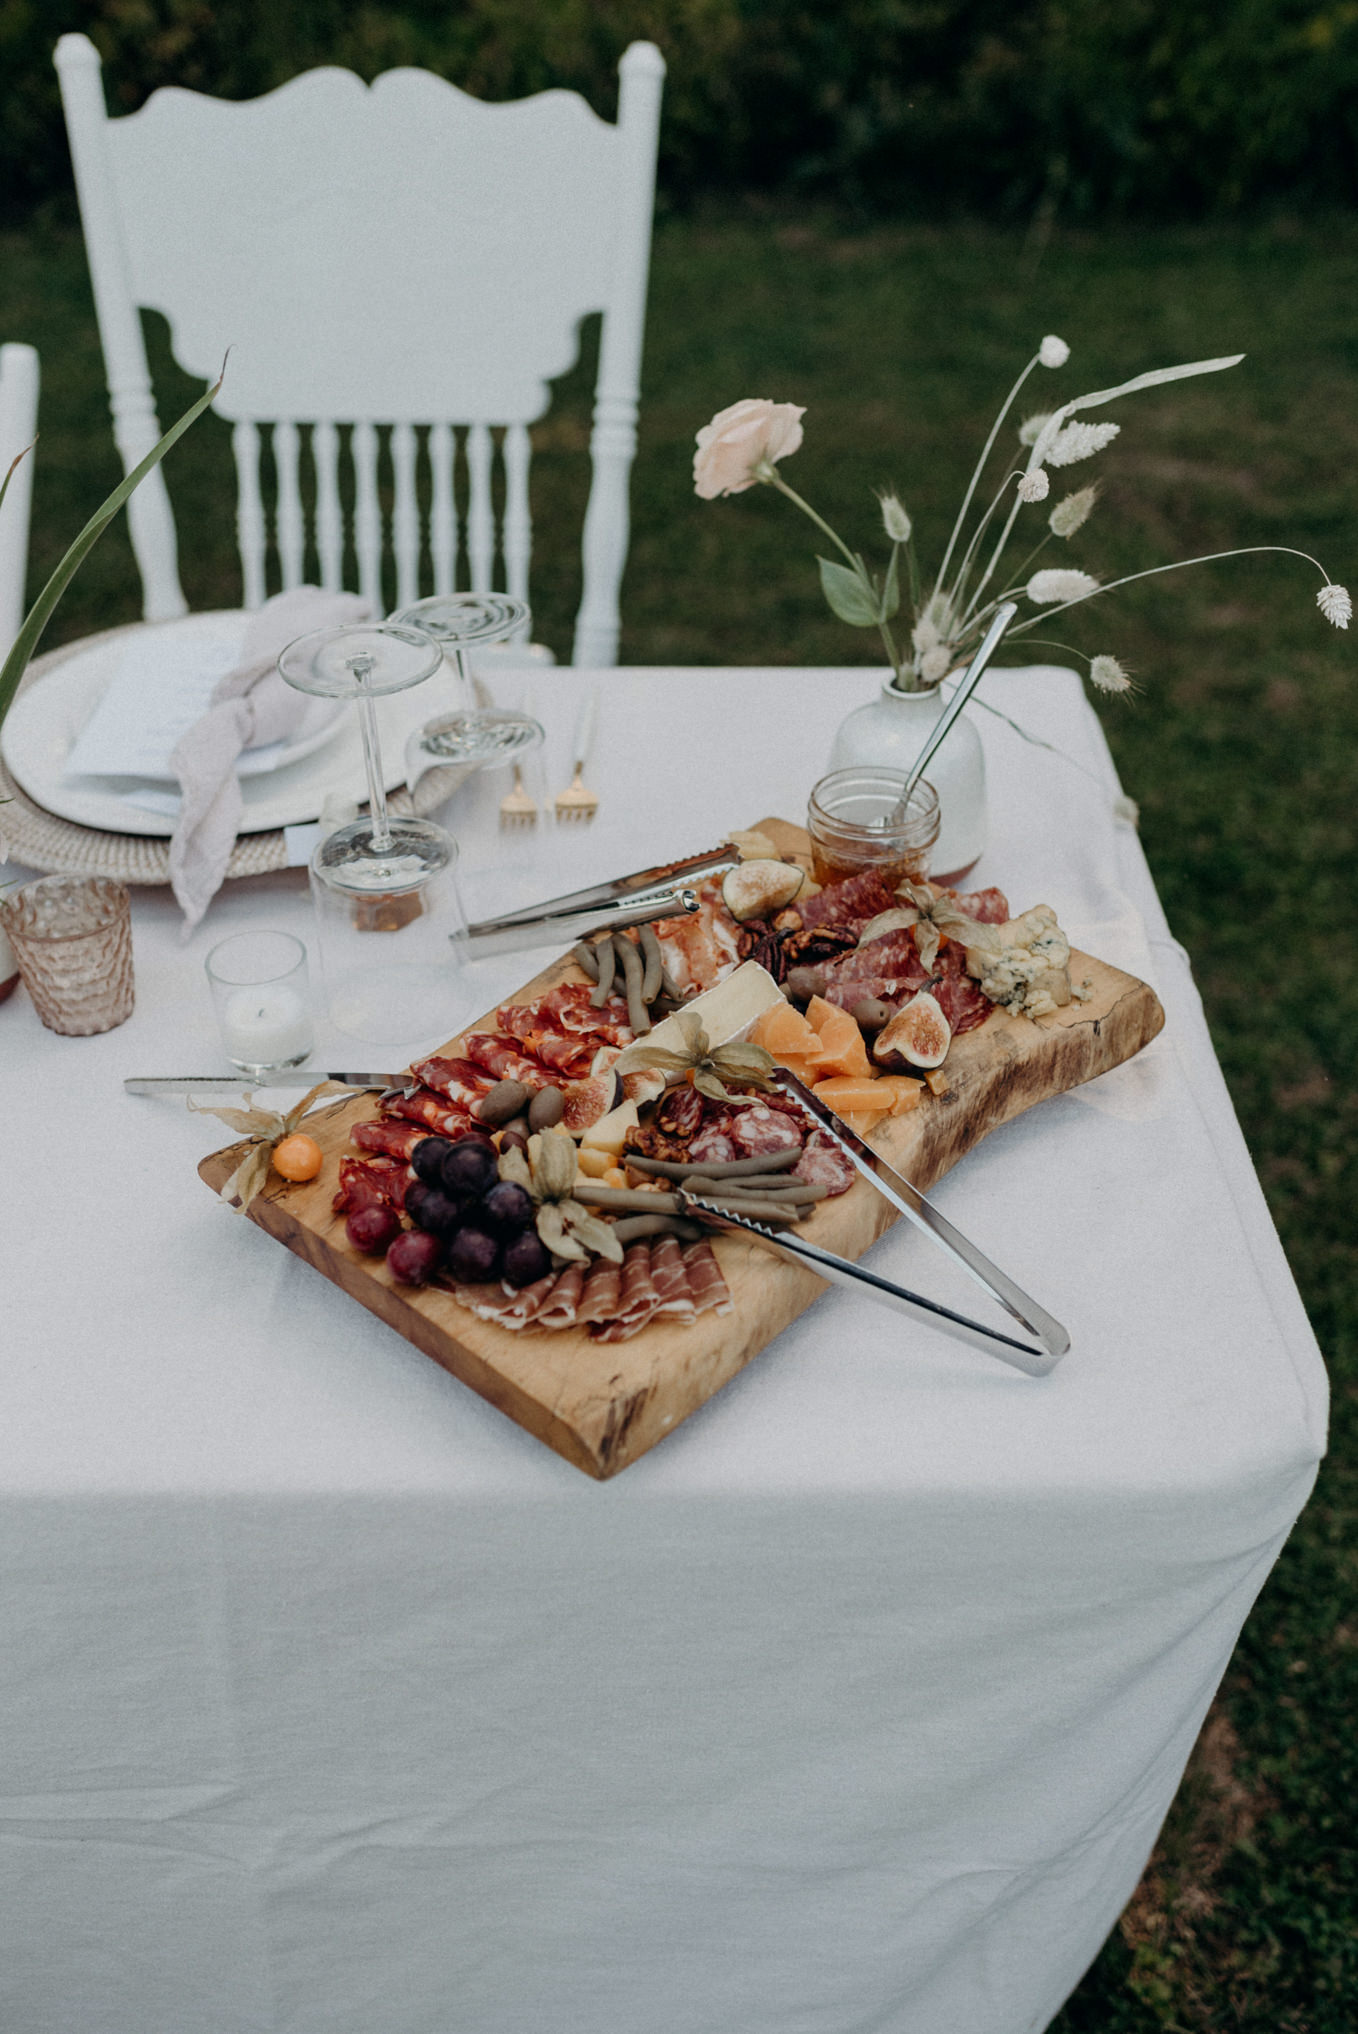 charcuterie on table for outdoor wedding reception